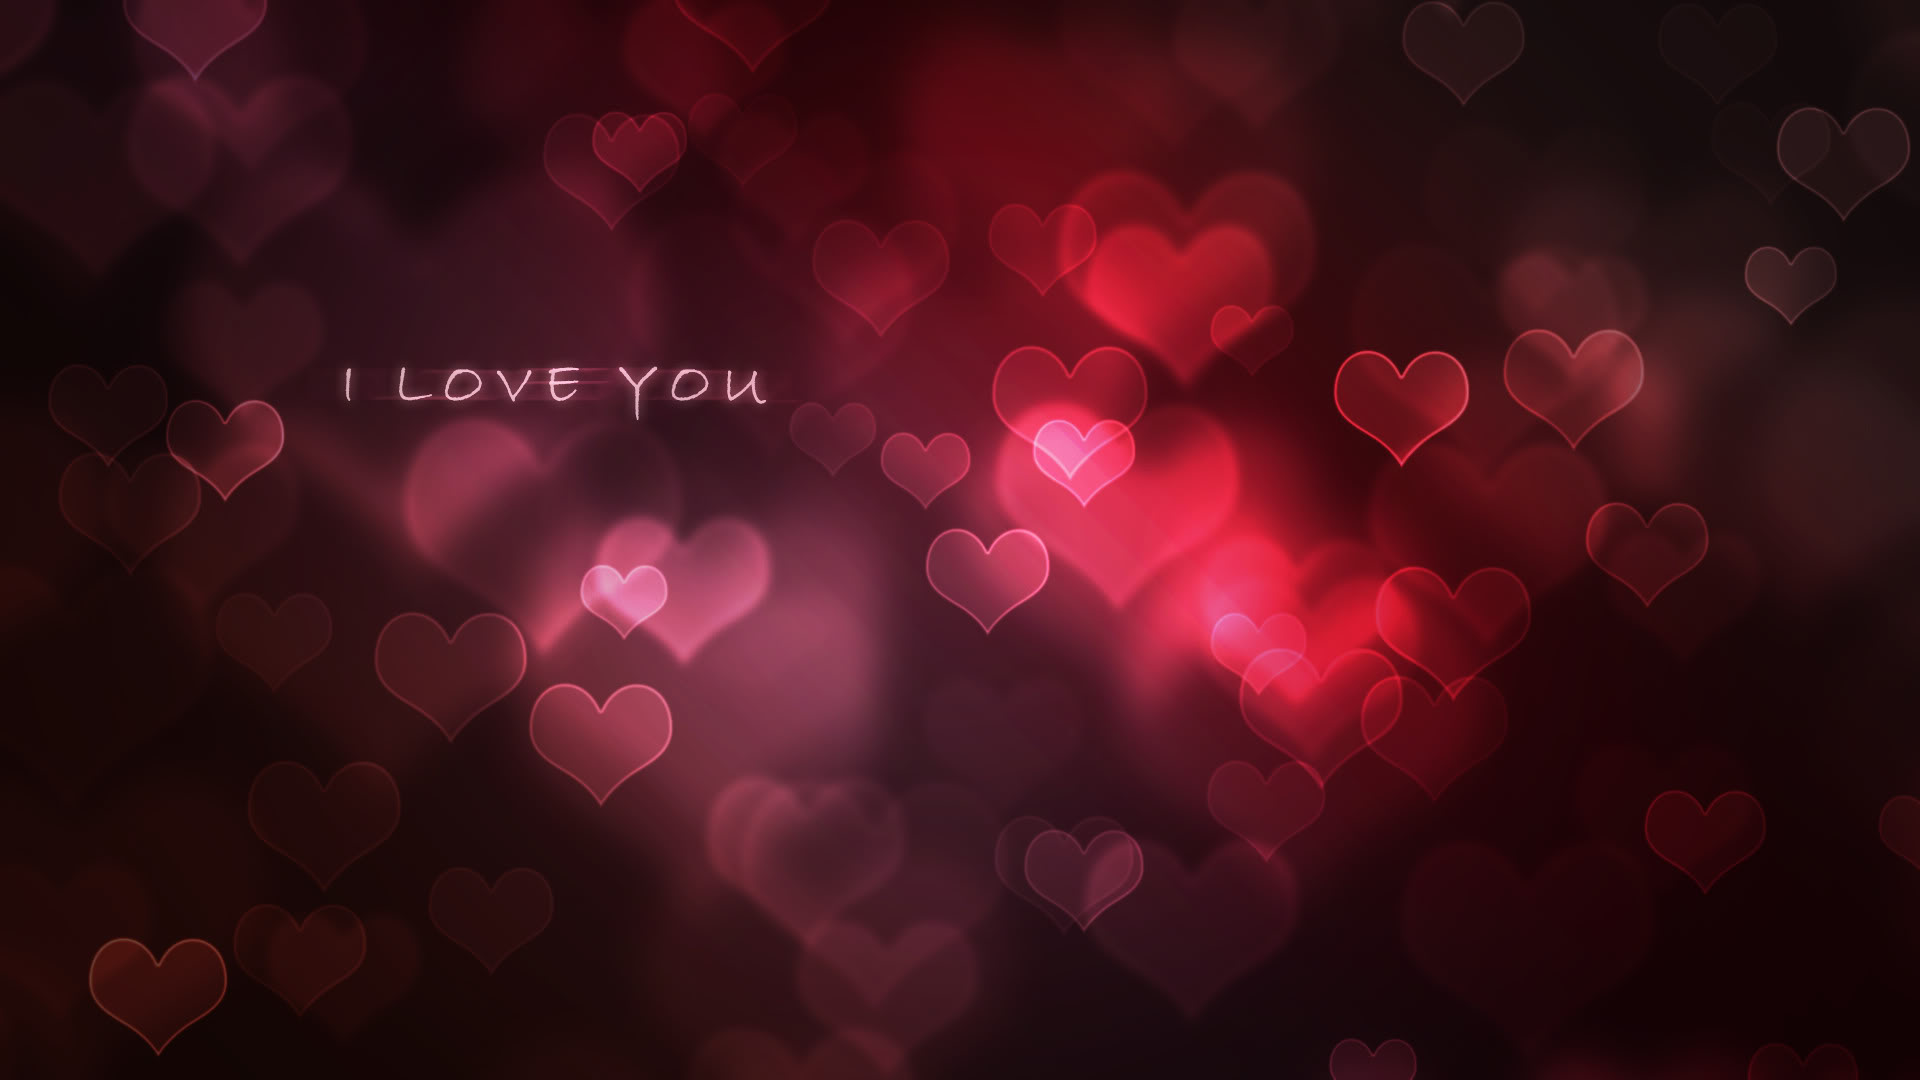 Love Wallpapers Awesome : Awesome Love Backgrounds 18163 1920x1080 px ~ HDWallSource.com